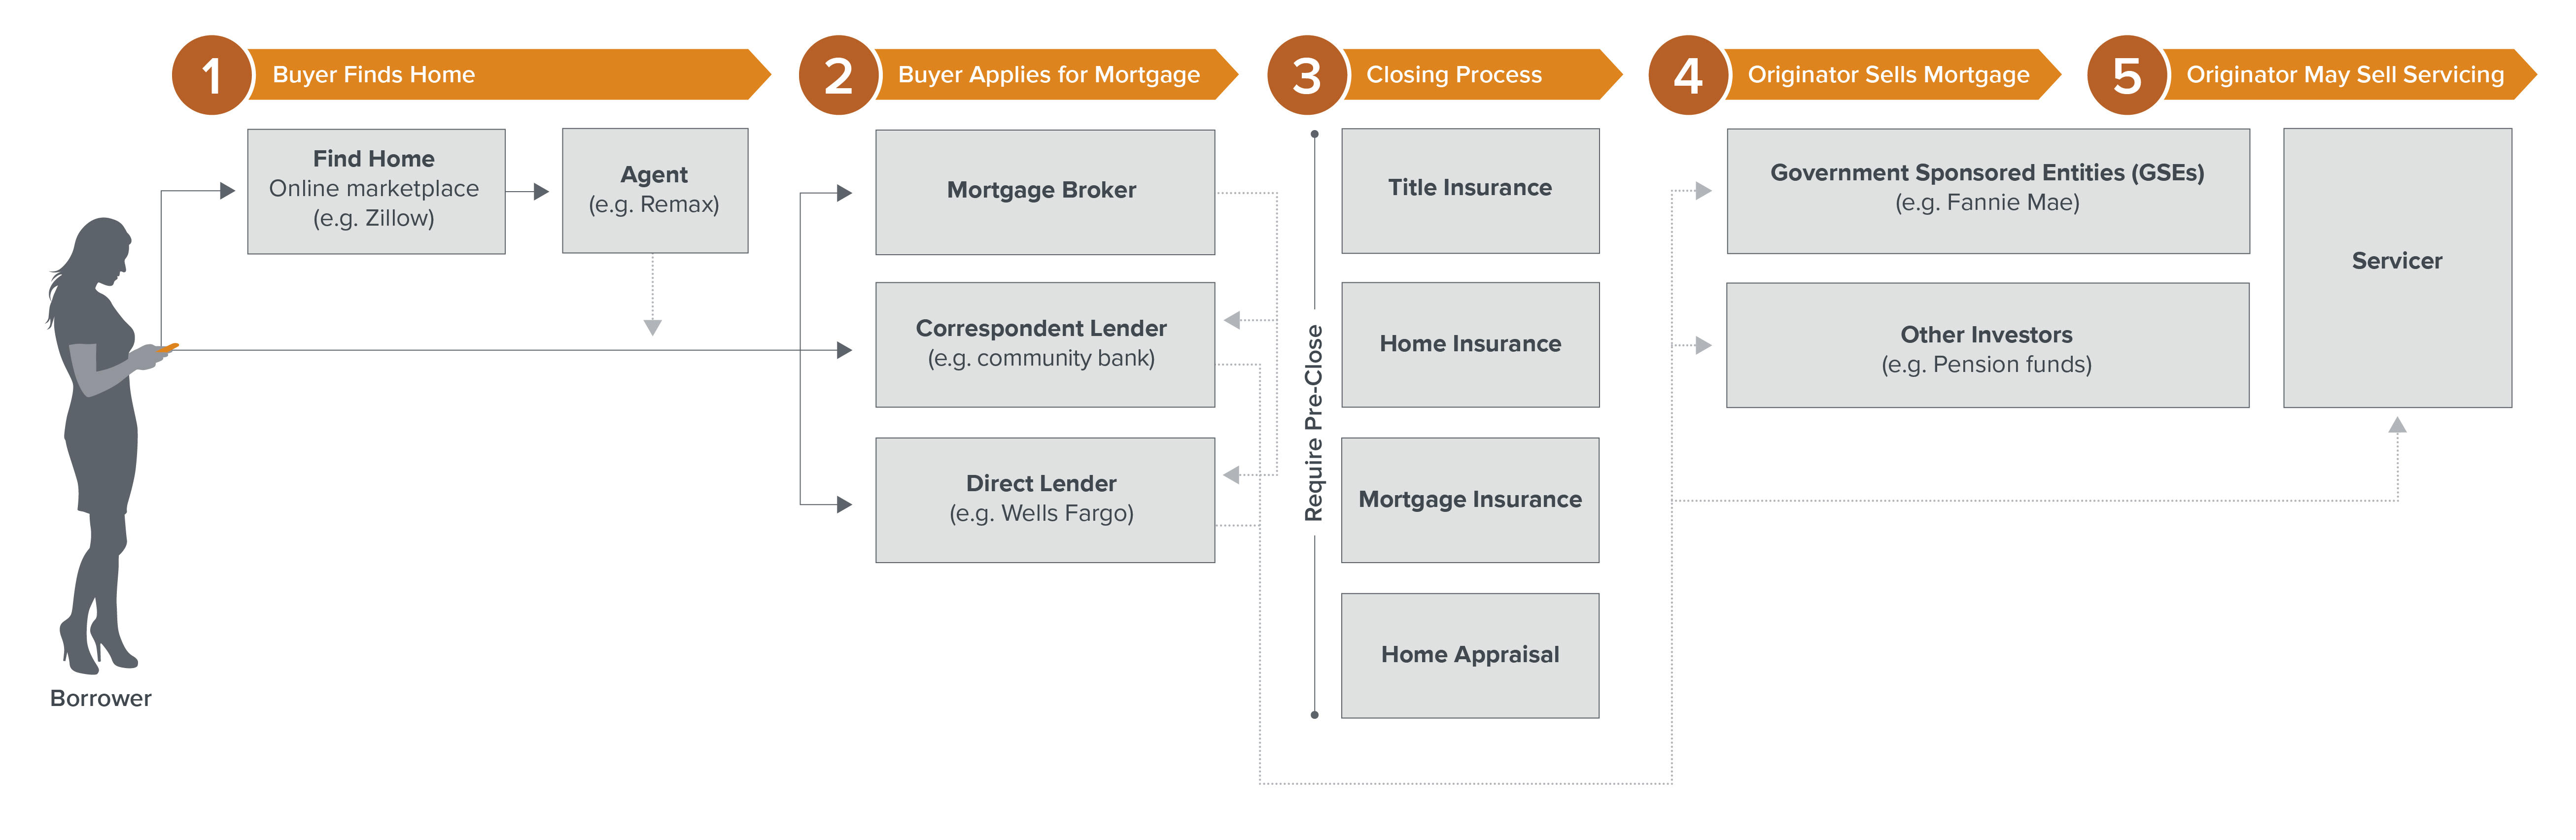 Making Sense of Mortgages: The Problem, and the Opportunity